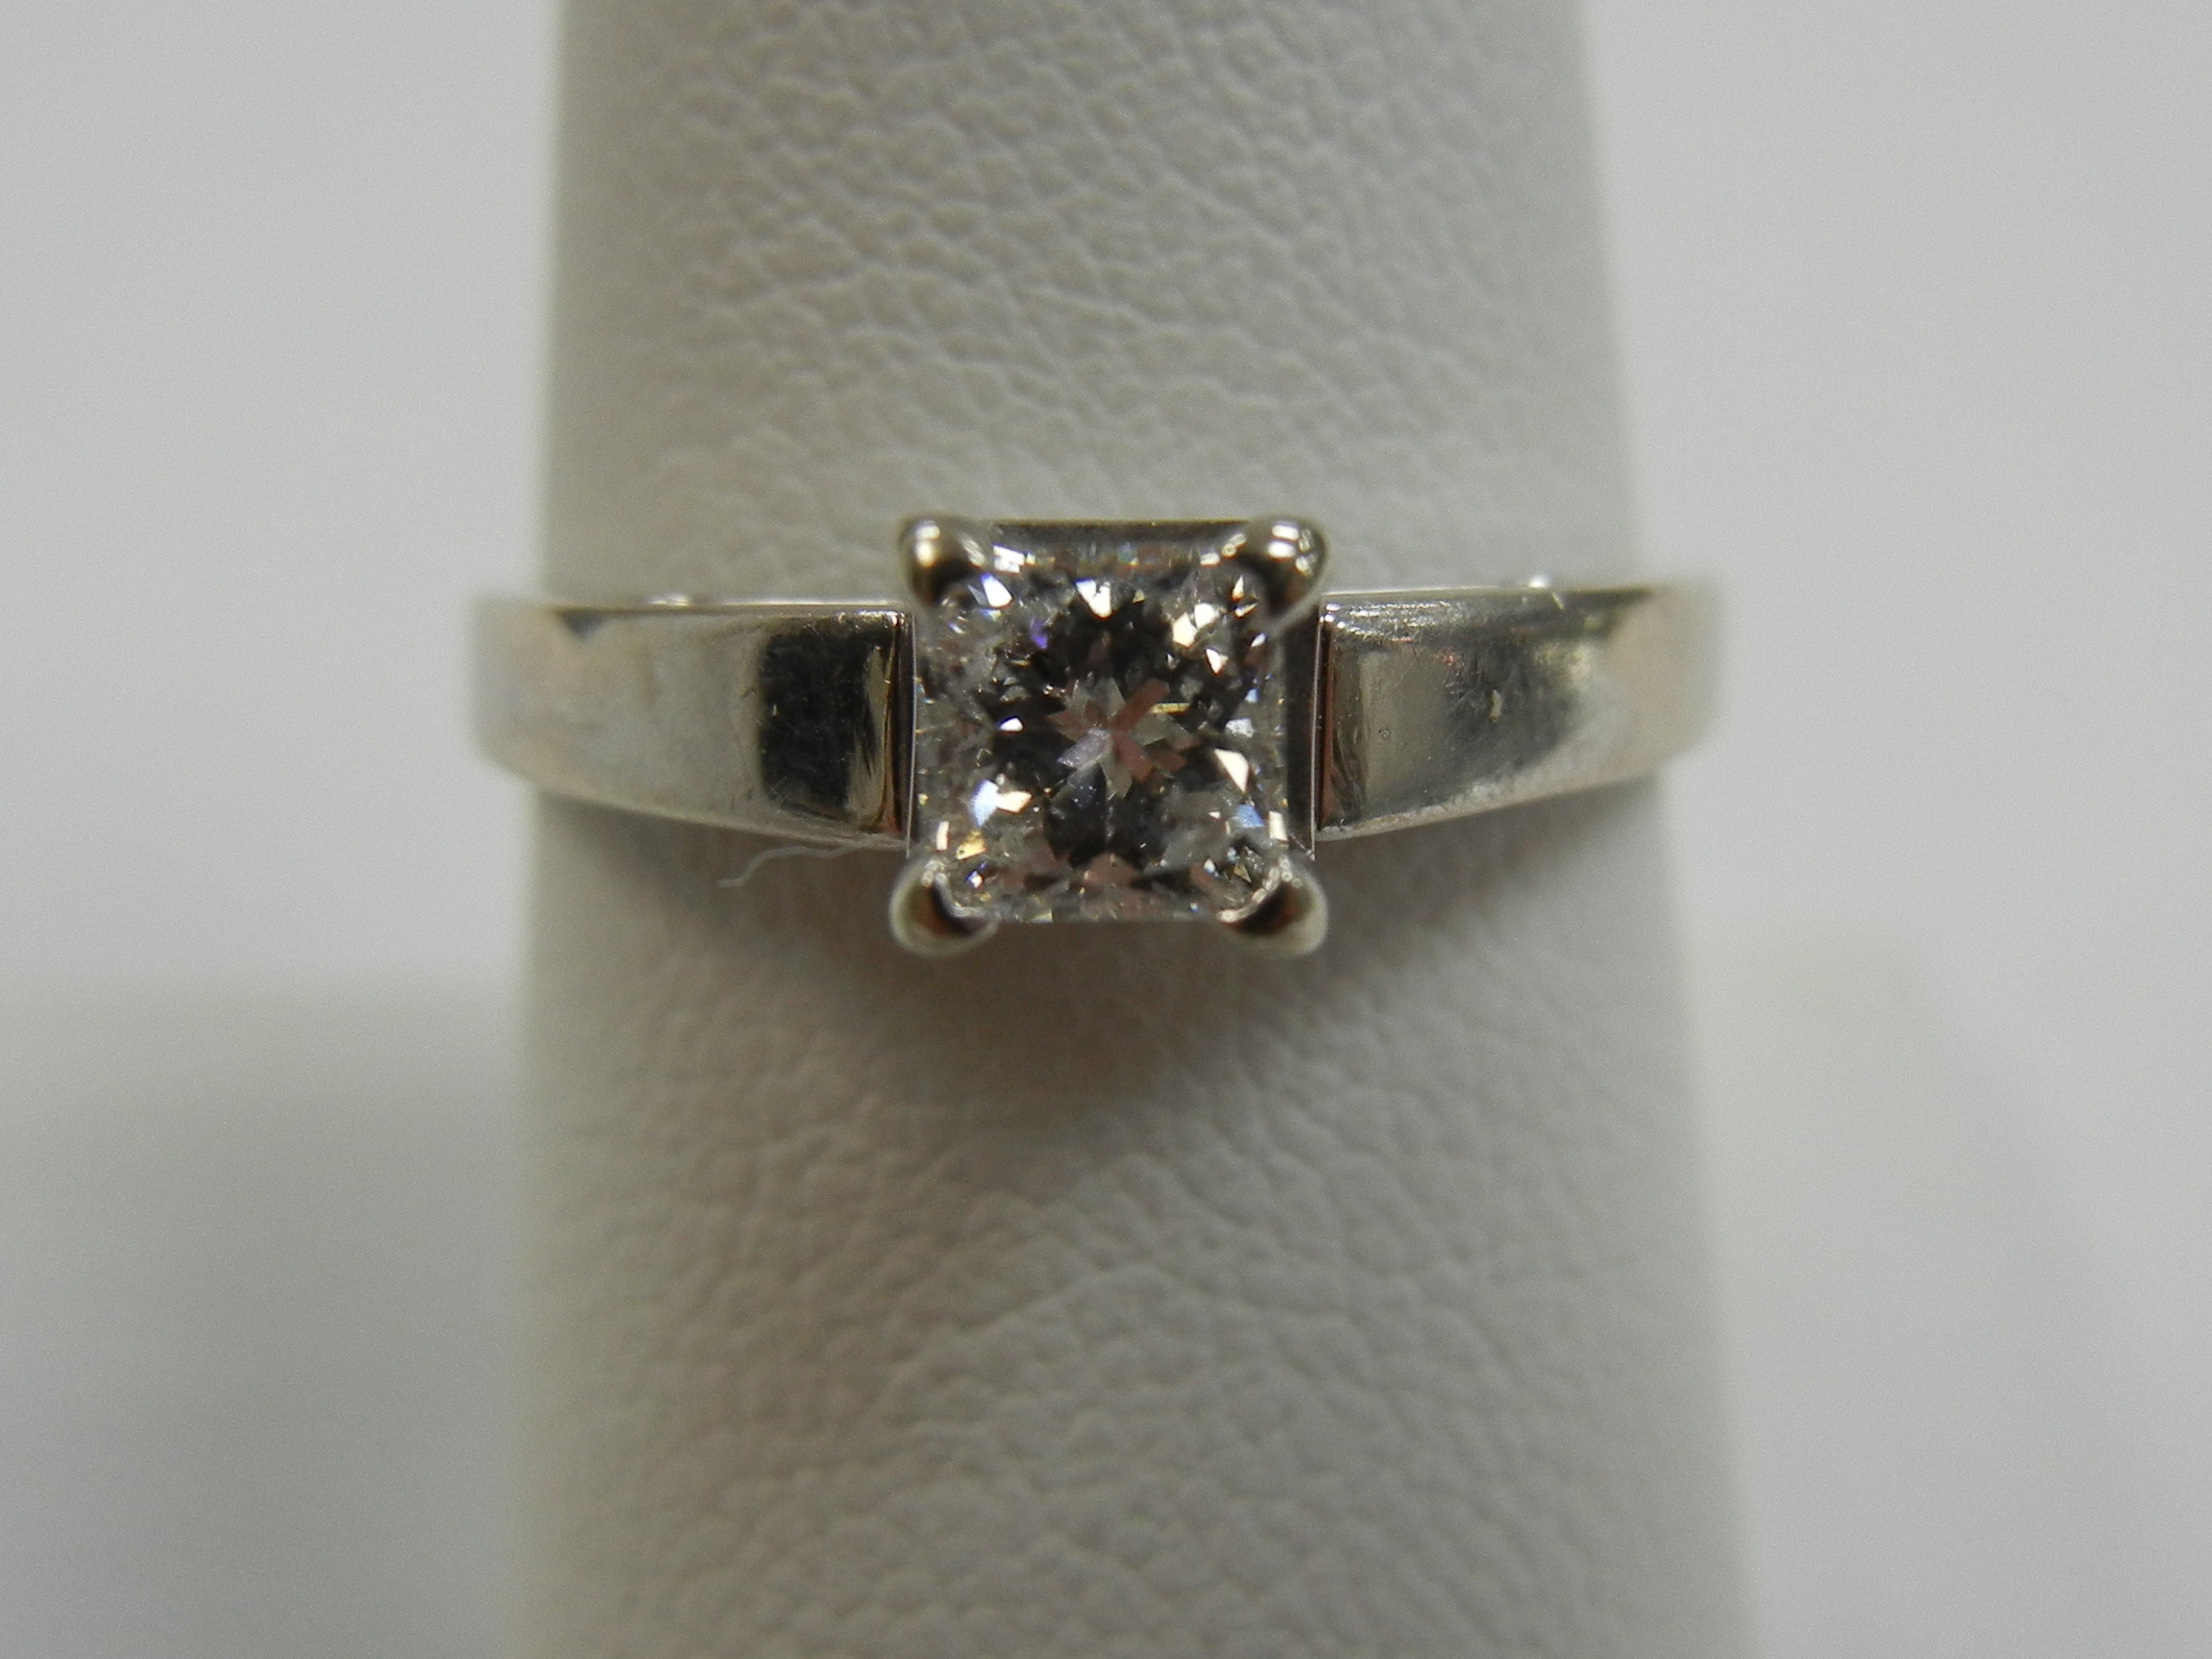 14 KT WHITE GOLD SOLITAIRE PRINCESS CUT ENGAGEMENT RING - SIZE 7.5